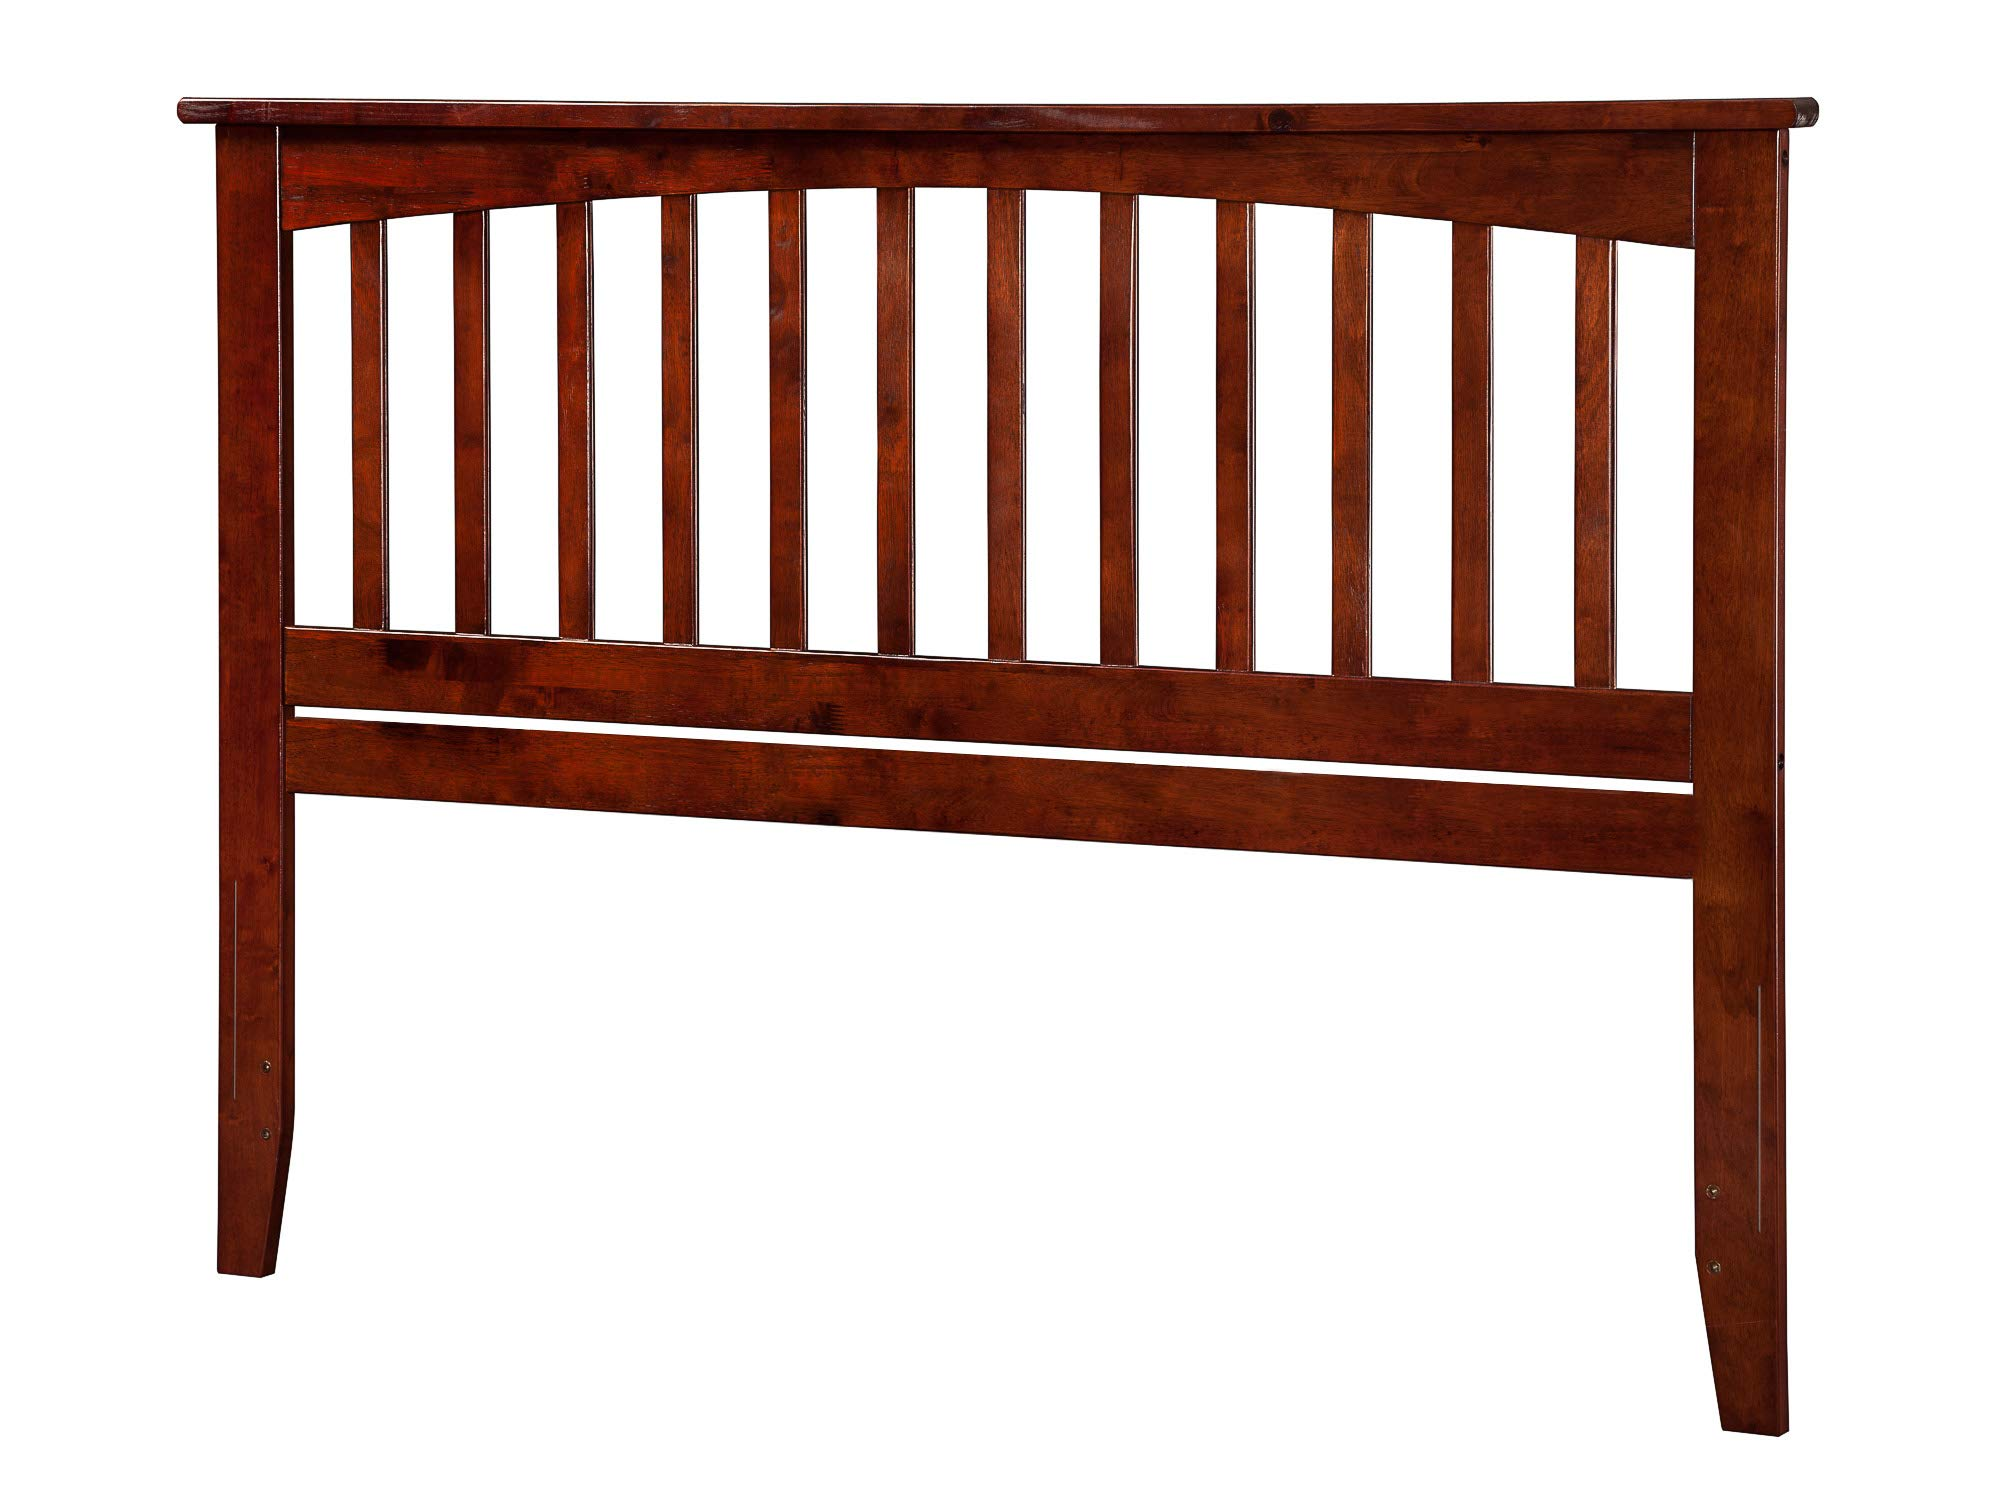 Atlantic Furniture AR287844 Mission Headboard, Queen, Walnut